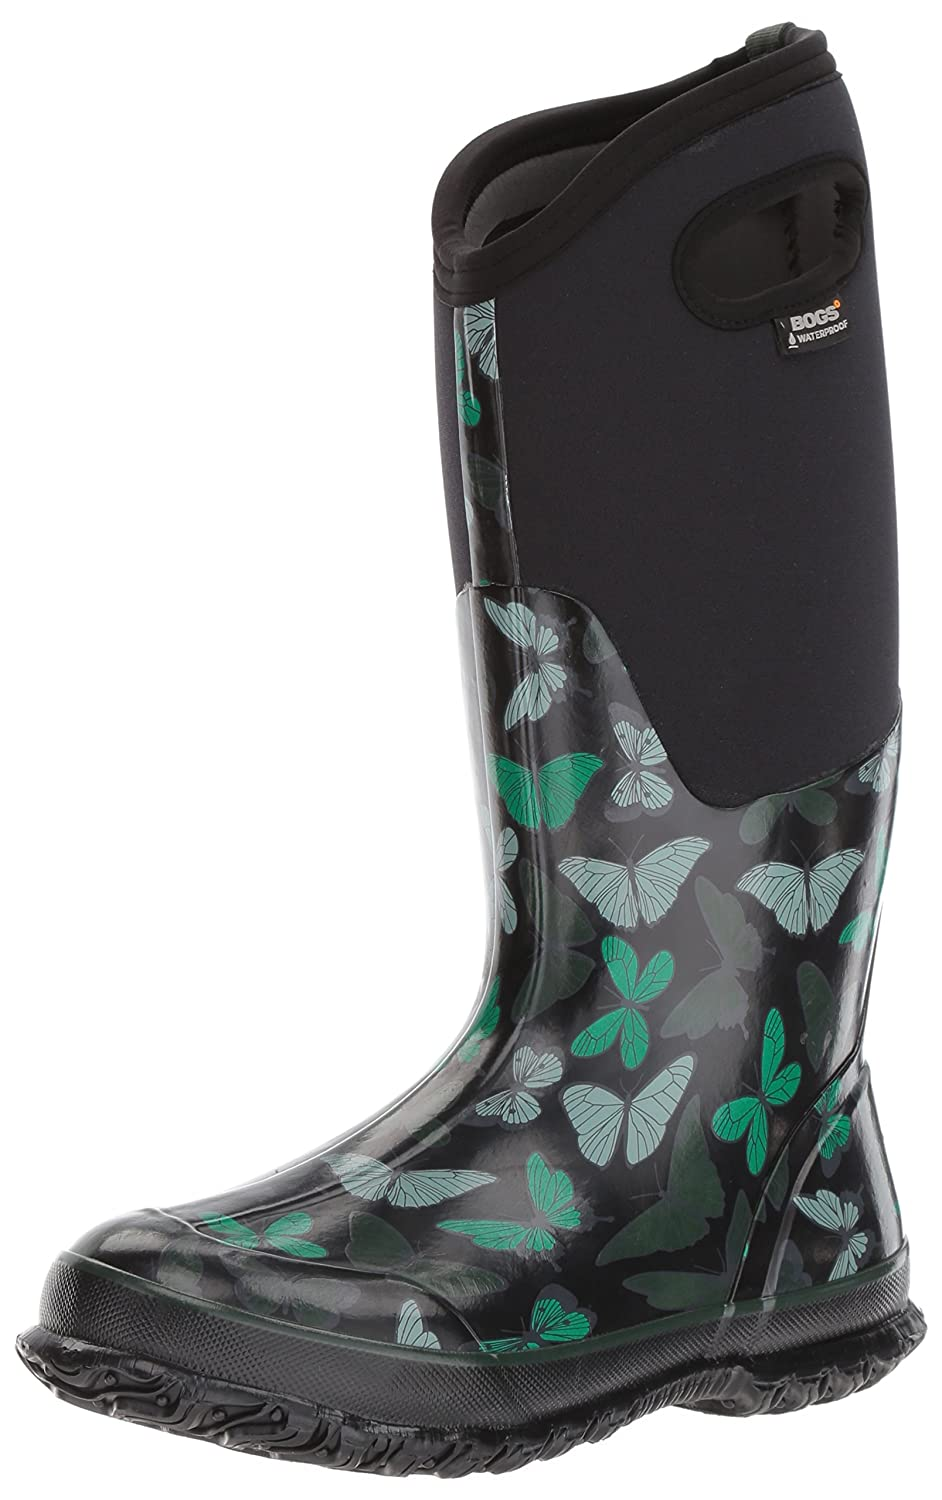 Bogs Women's Classic Butterflies Snow Boot B01MUDZNNK 10 B(M) US|Black/Multi